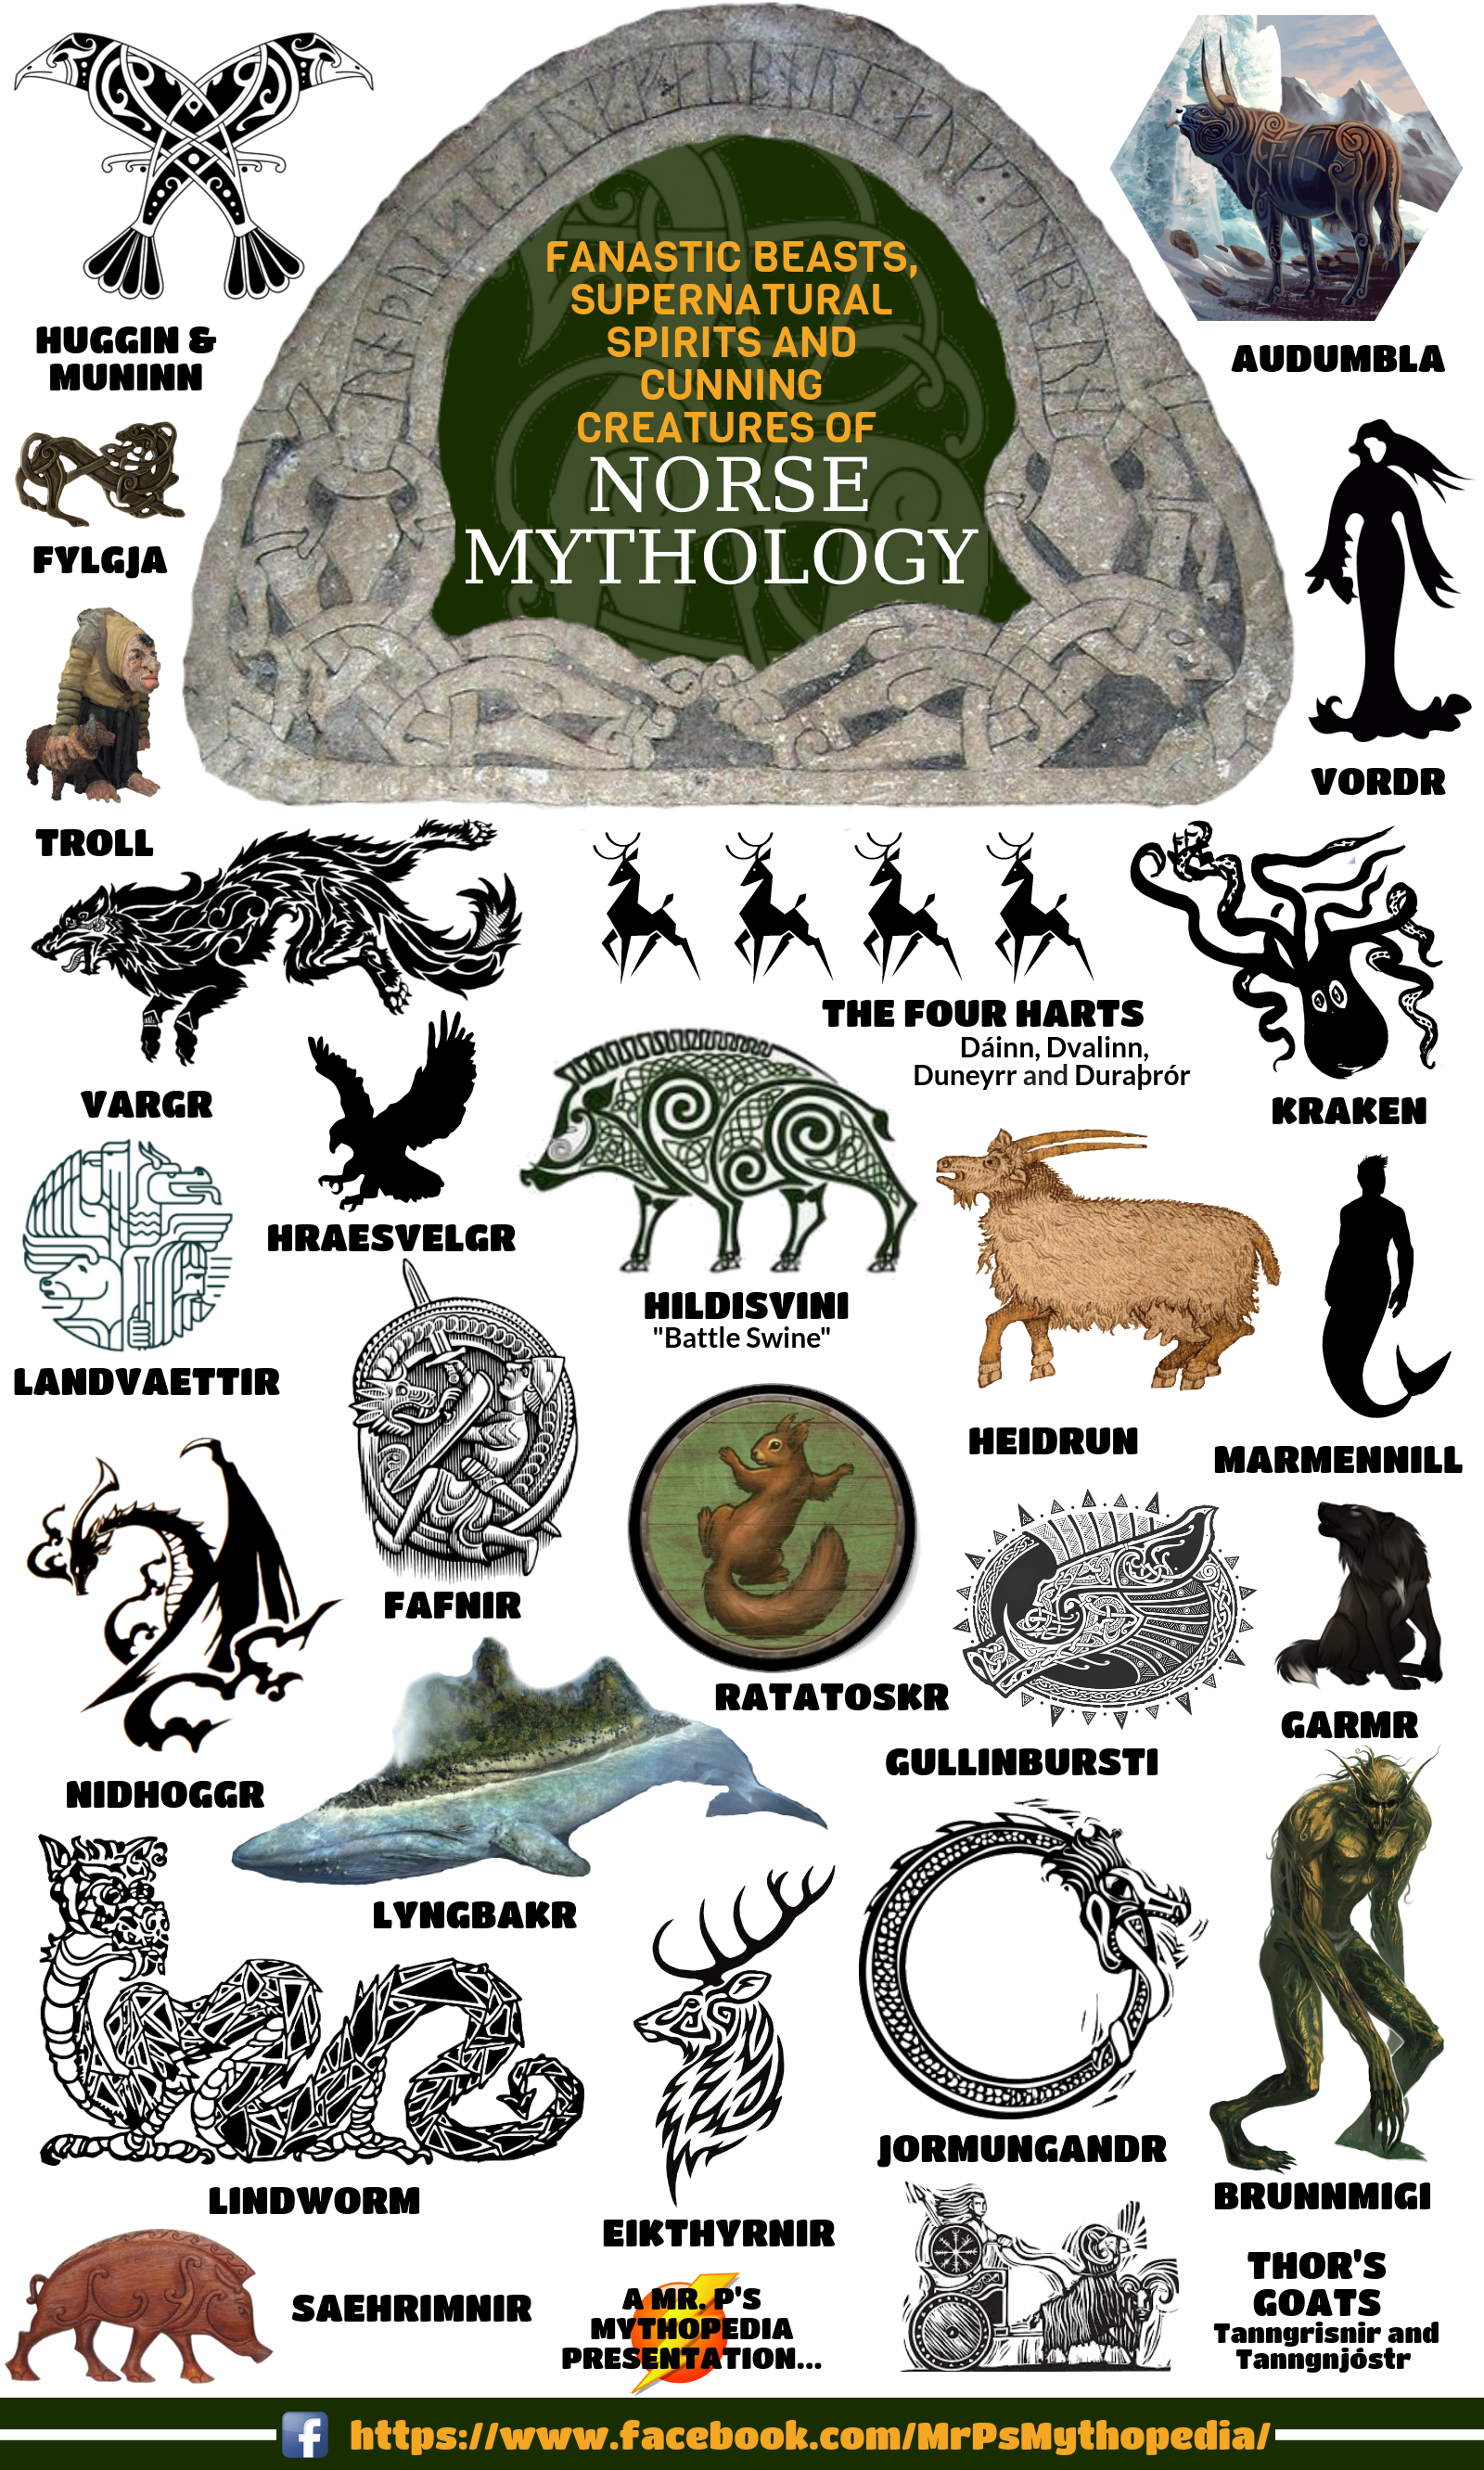 Mythological Creatures Of Norse Religion Httpswwwfacebookcom - Norse religion